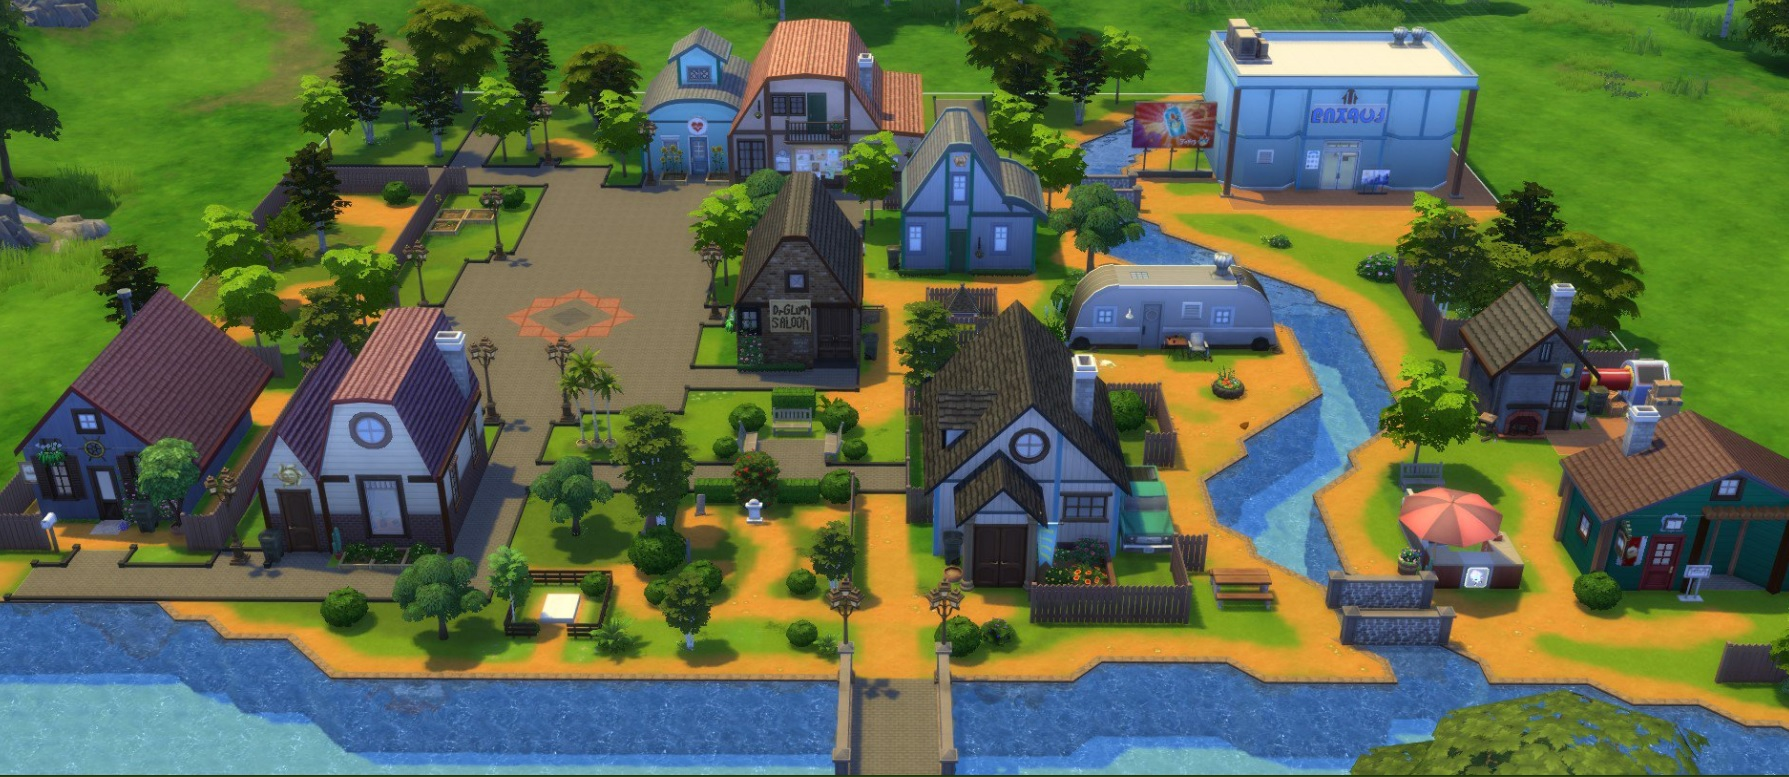 Stardew Valley's Pelican Town looks great in The Sims 4 | PC Gamer